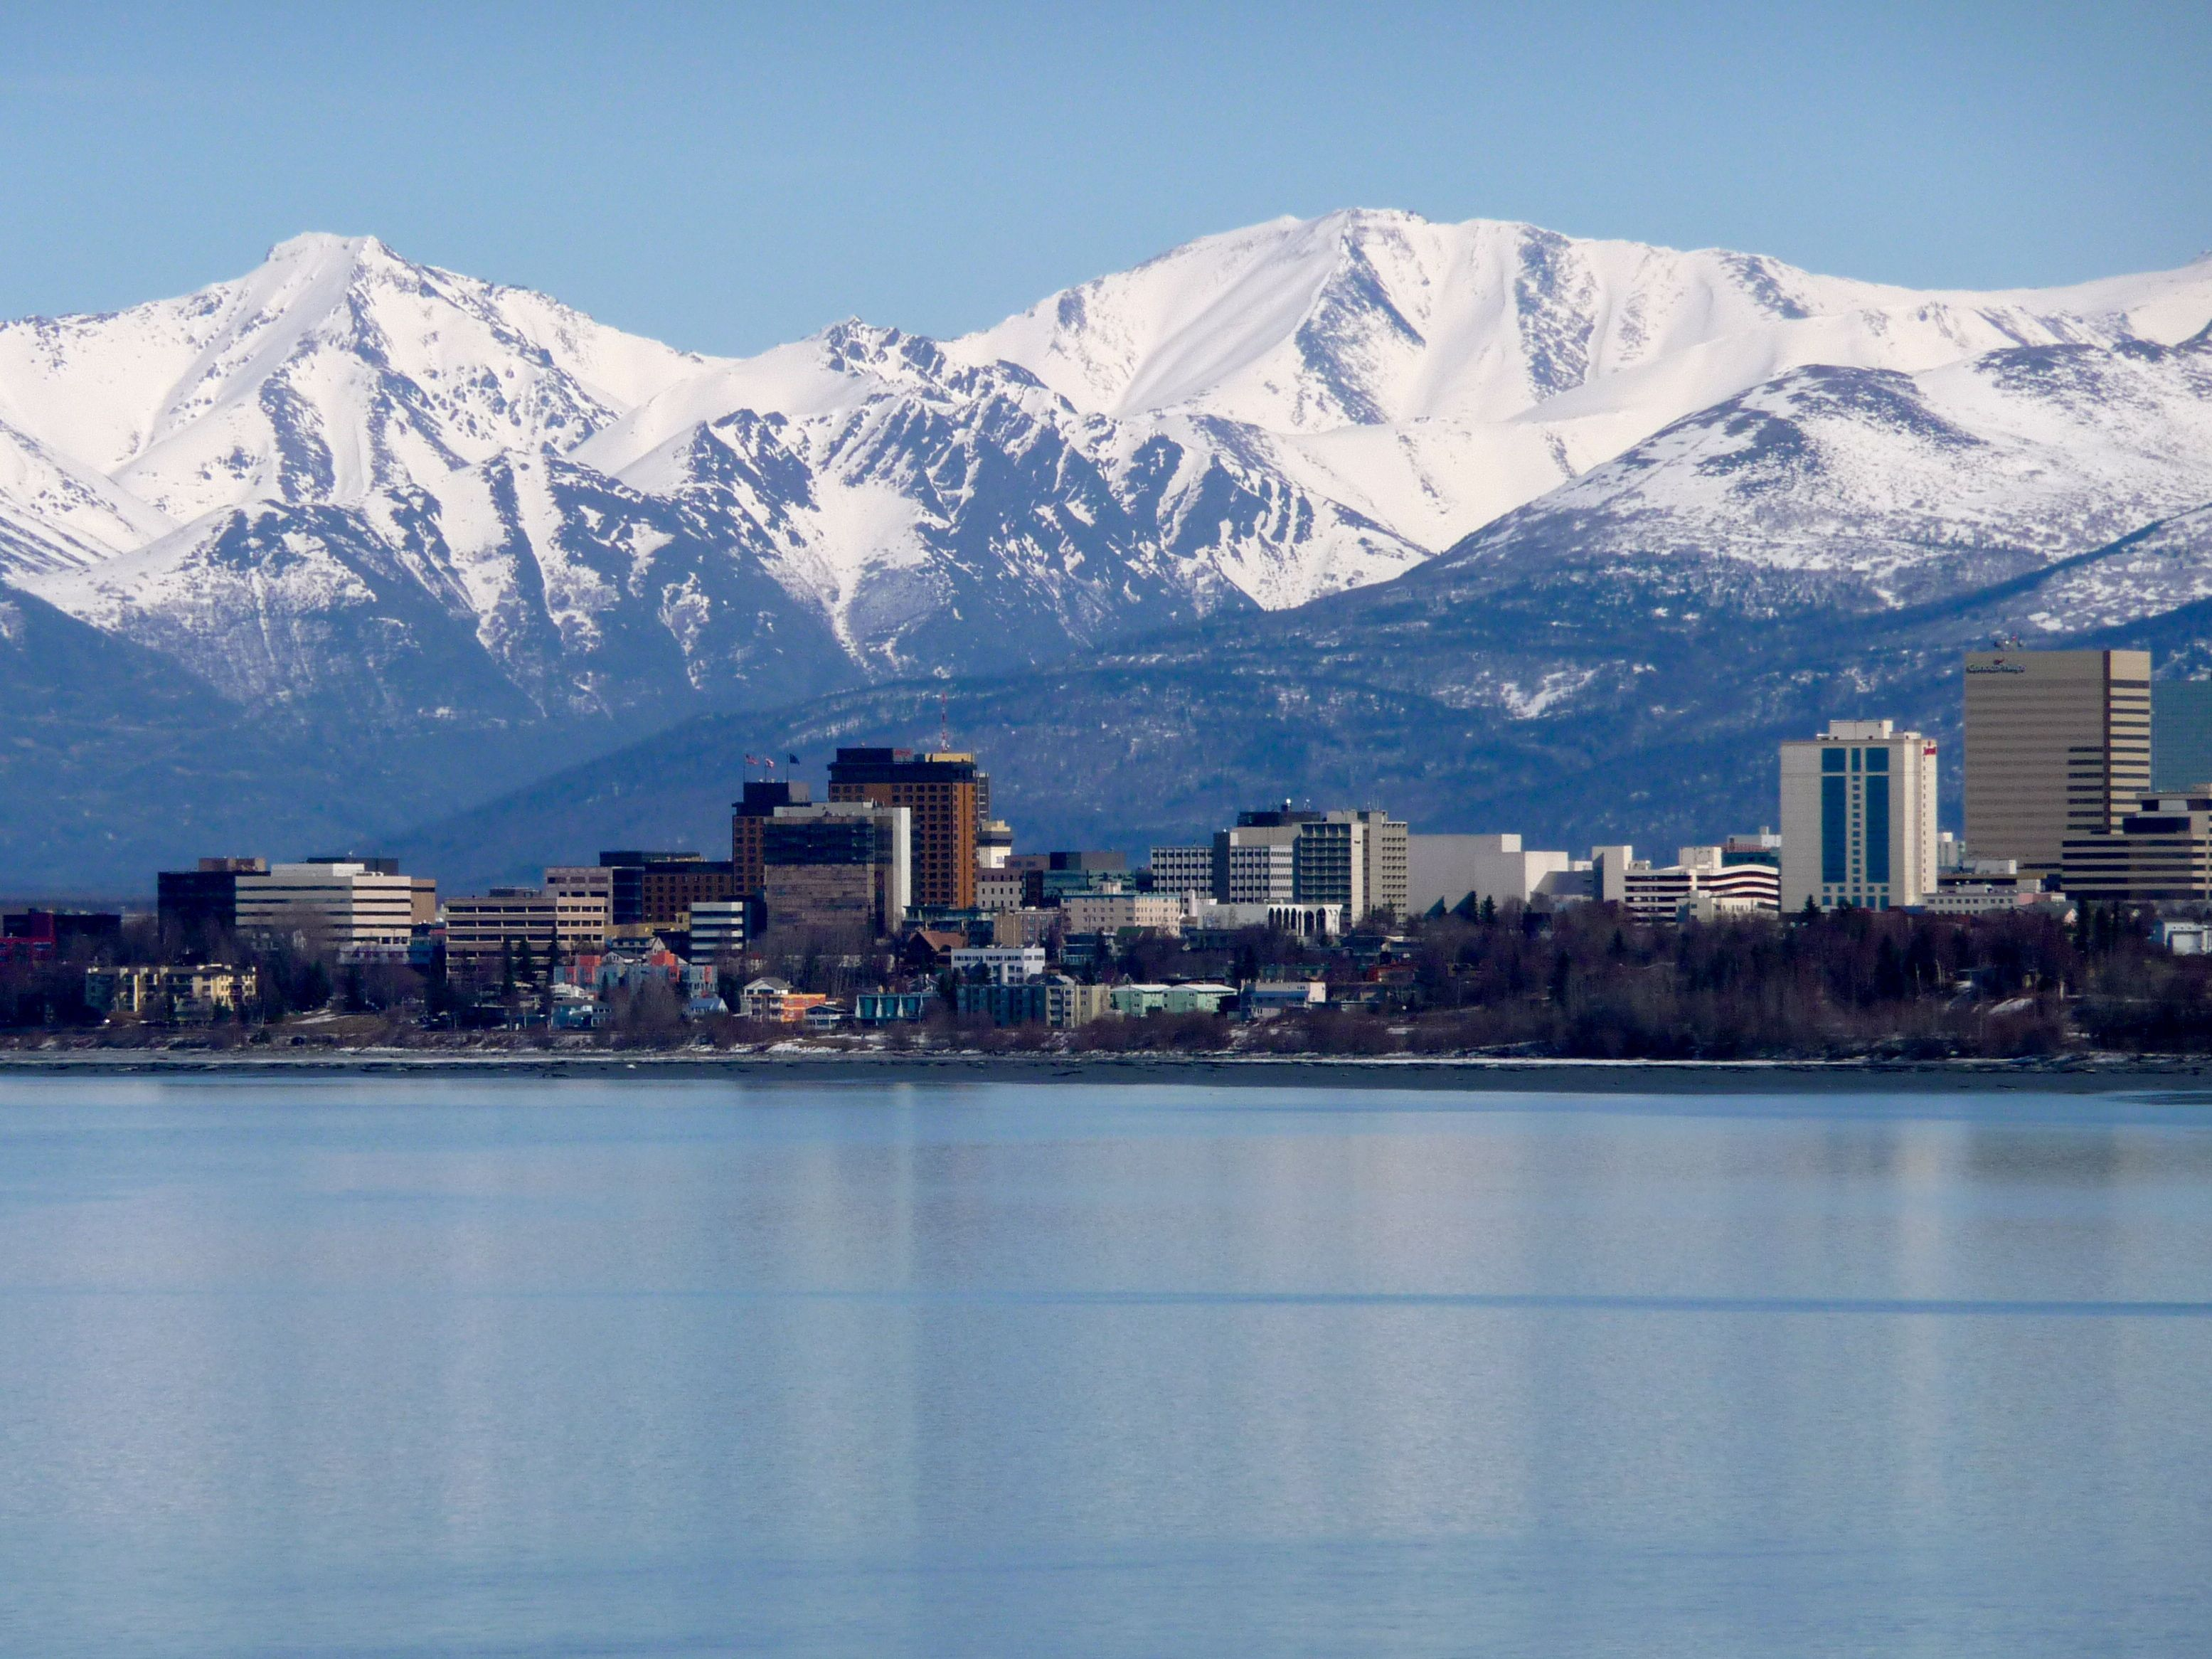 View Of Anchorage Ak From Across The Water With Snow Ced Mountains In Background